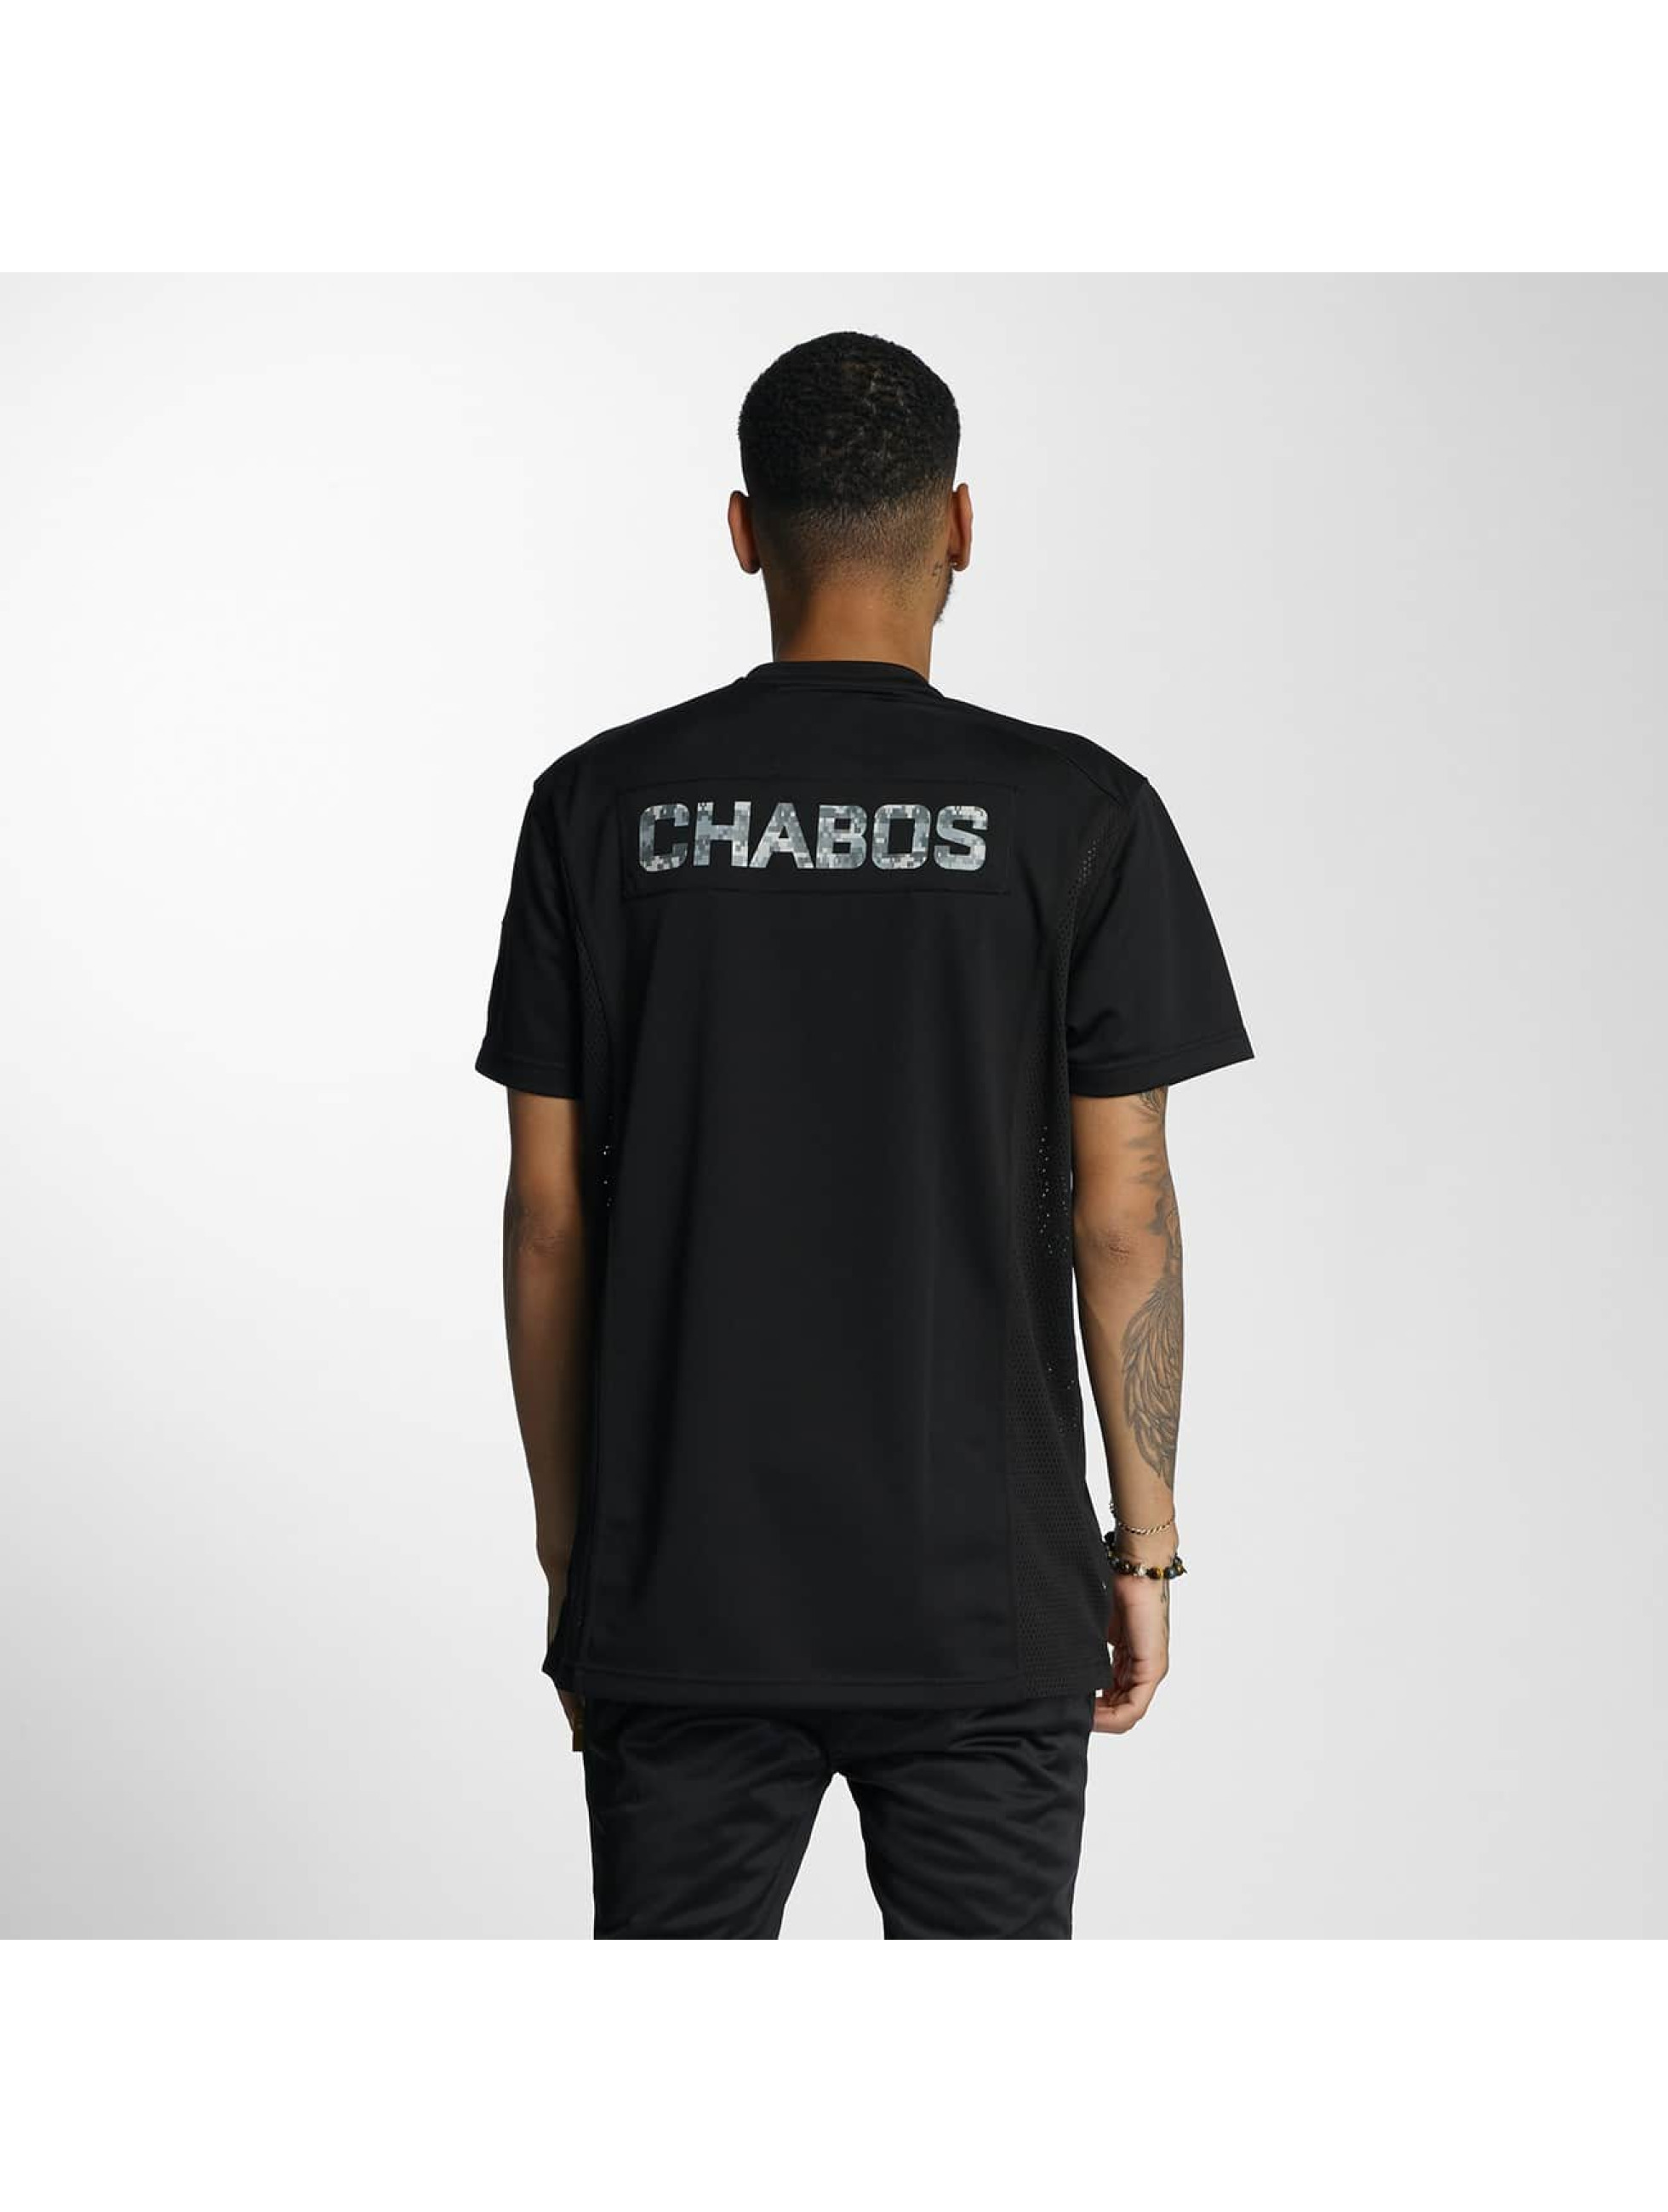 CHABOS IIVII T-Shirt Football Jersey black